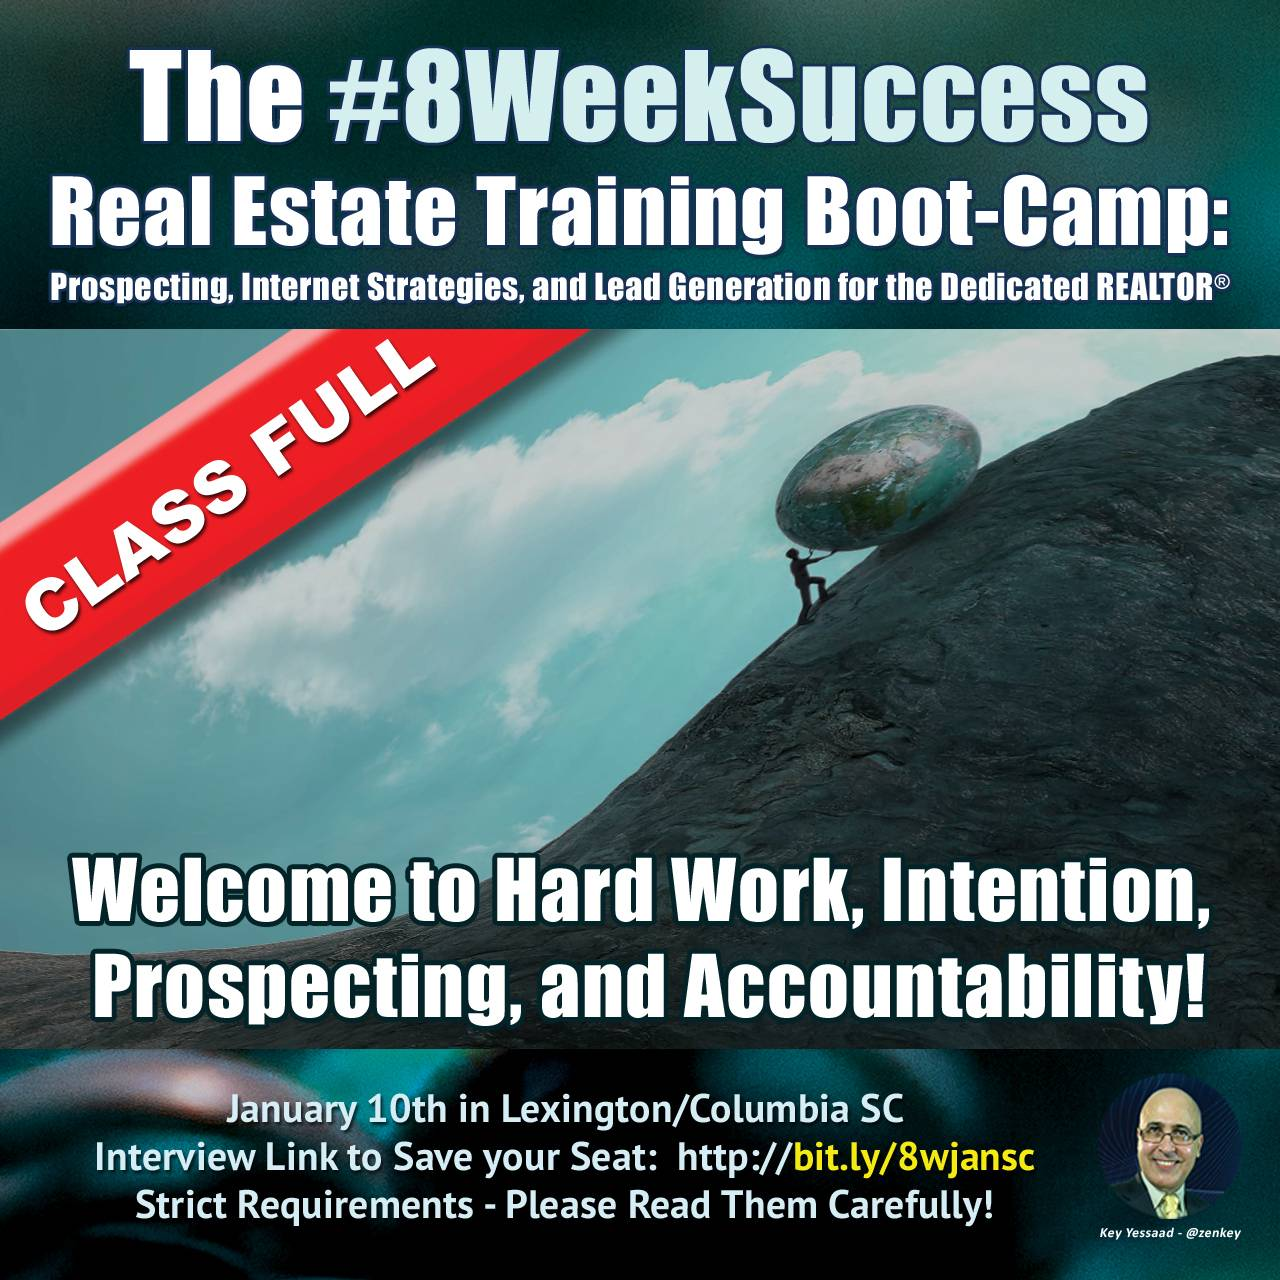 New Group starting the #8WeekSuccess Boot-Camp this Friday... #20in20